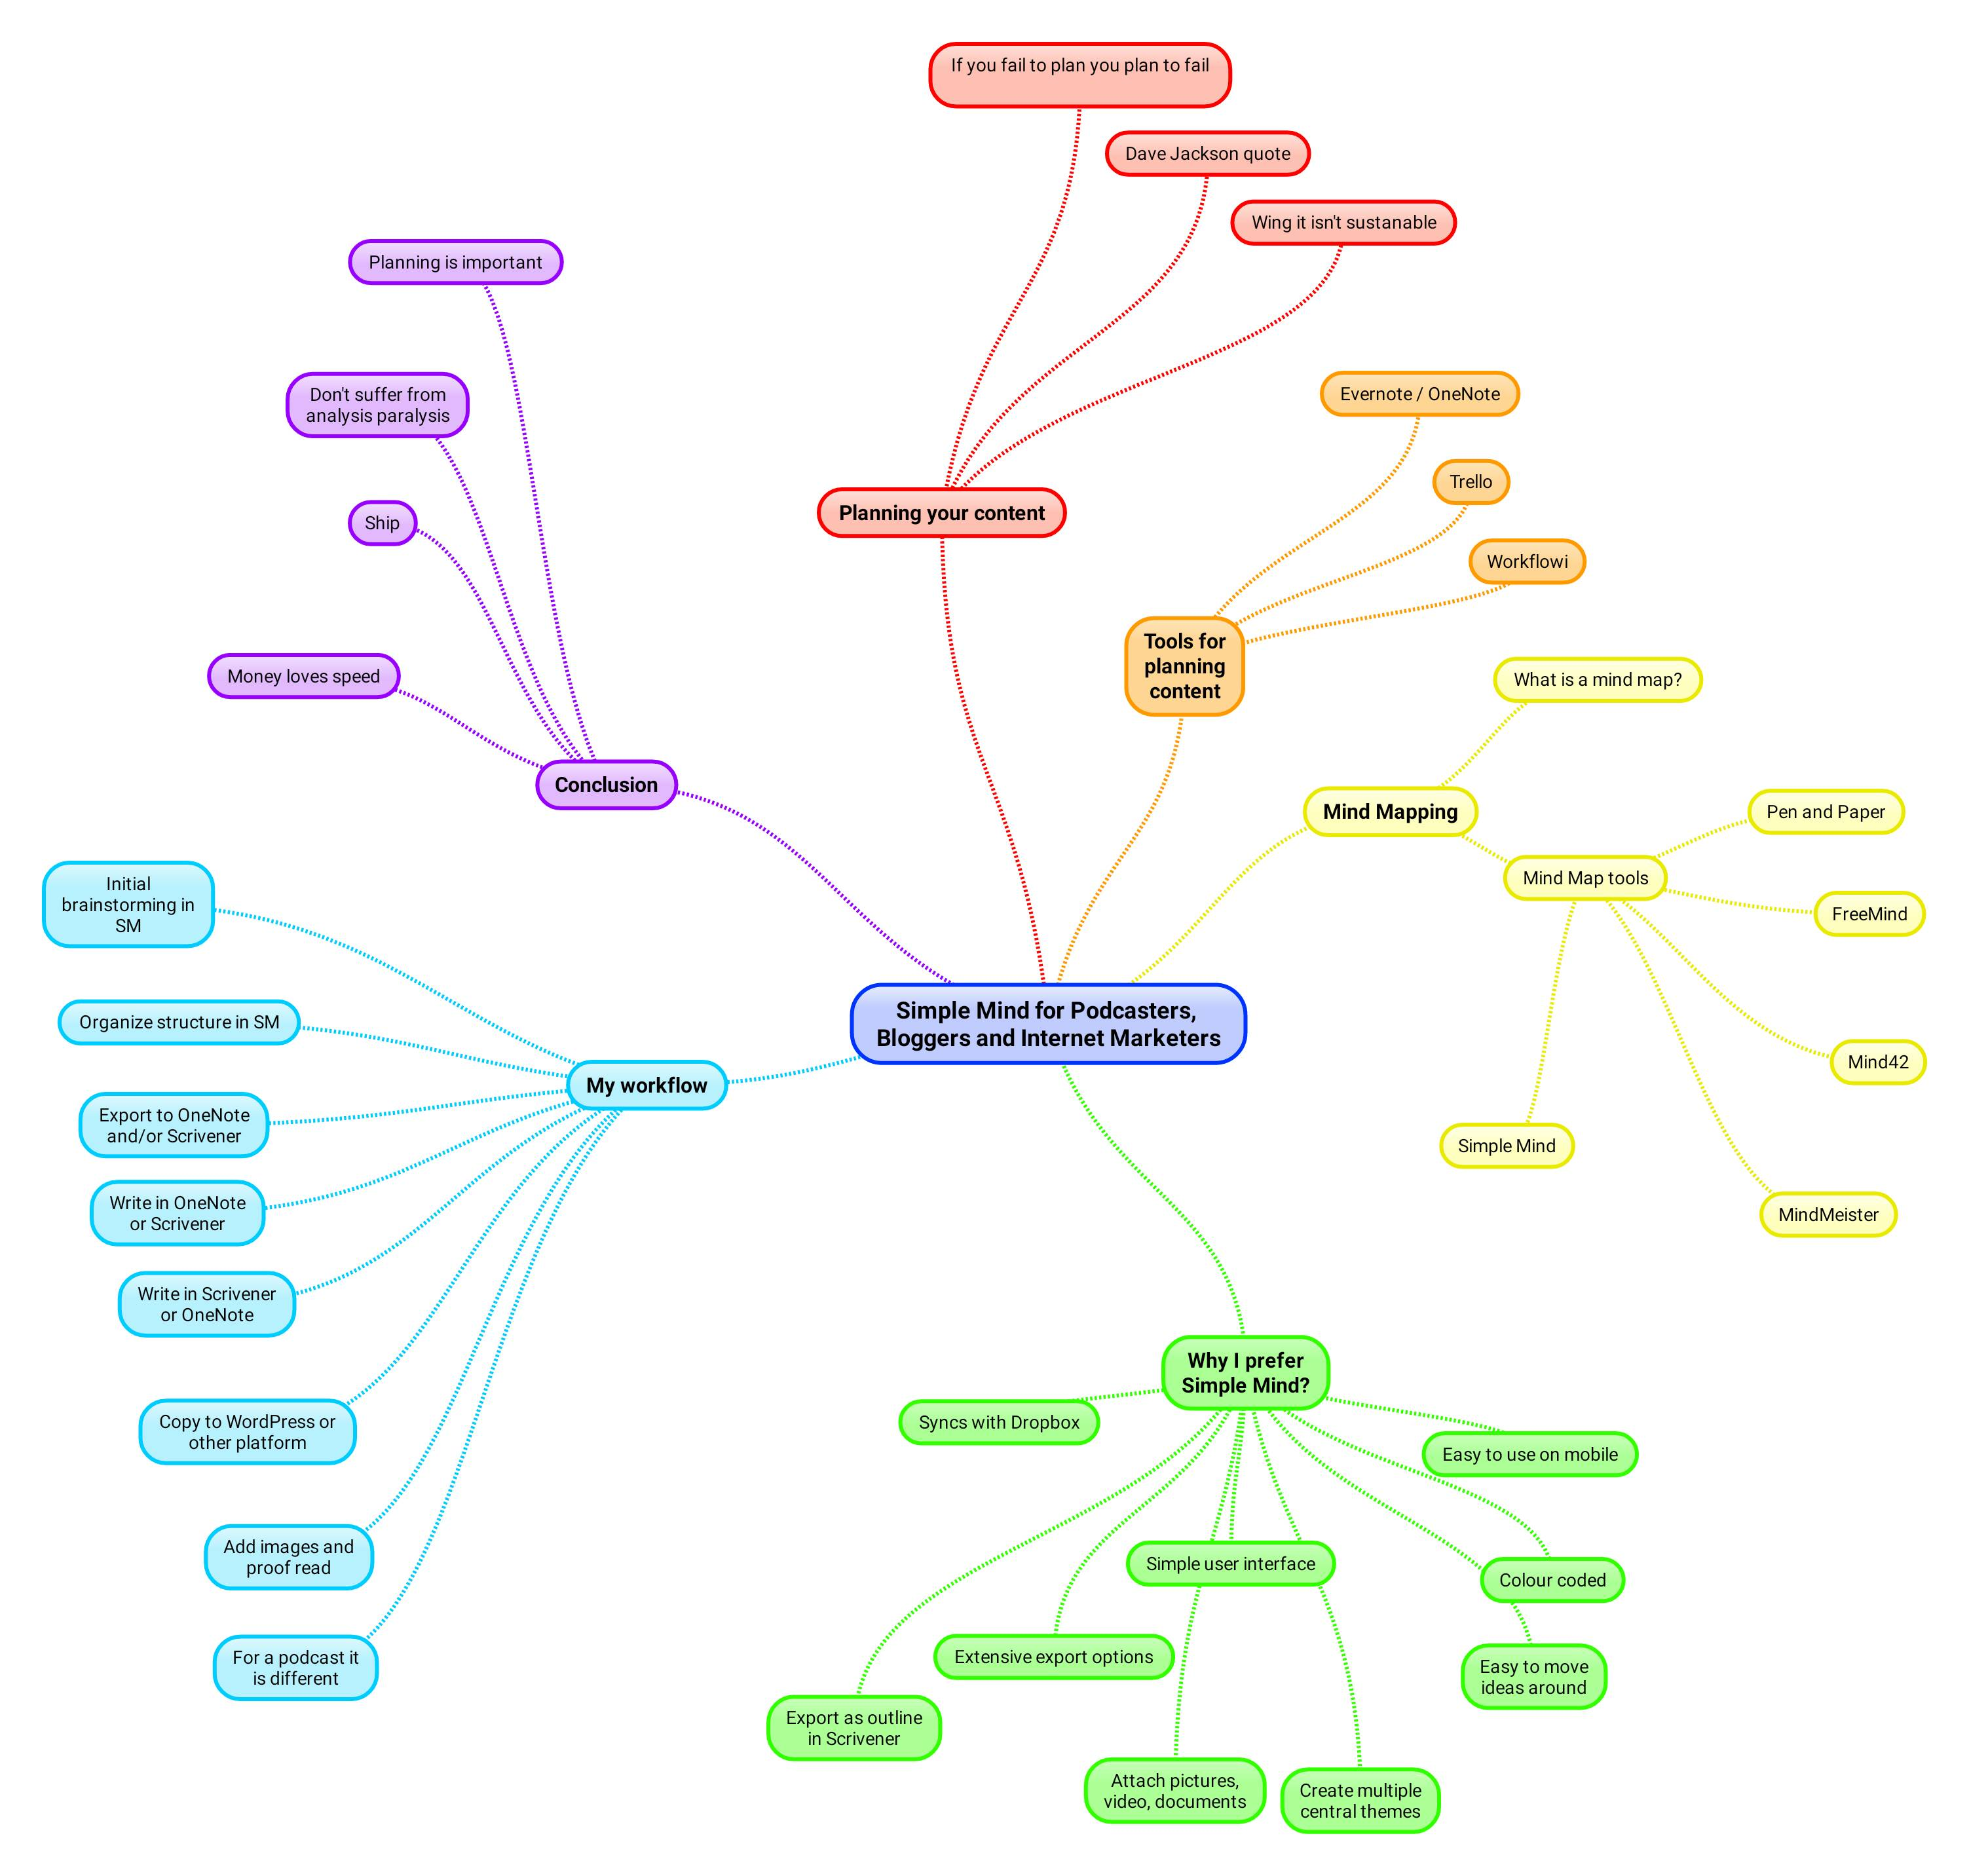 Mind Mapping for Podcasters and Bloggers